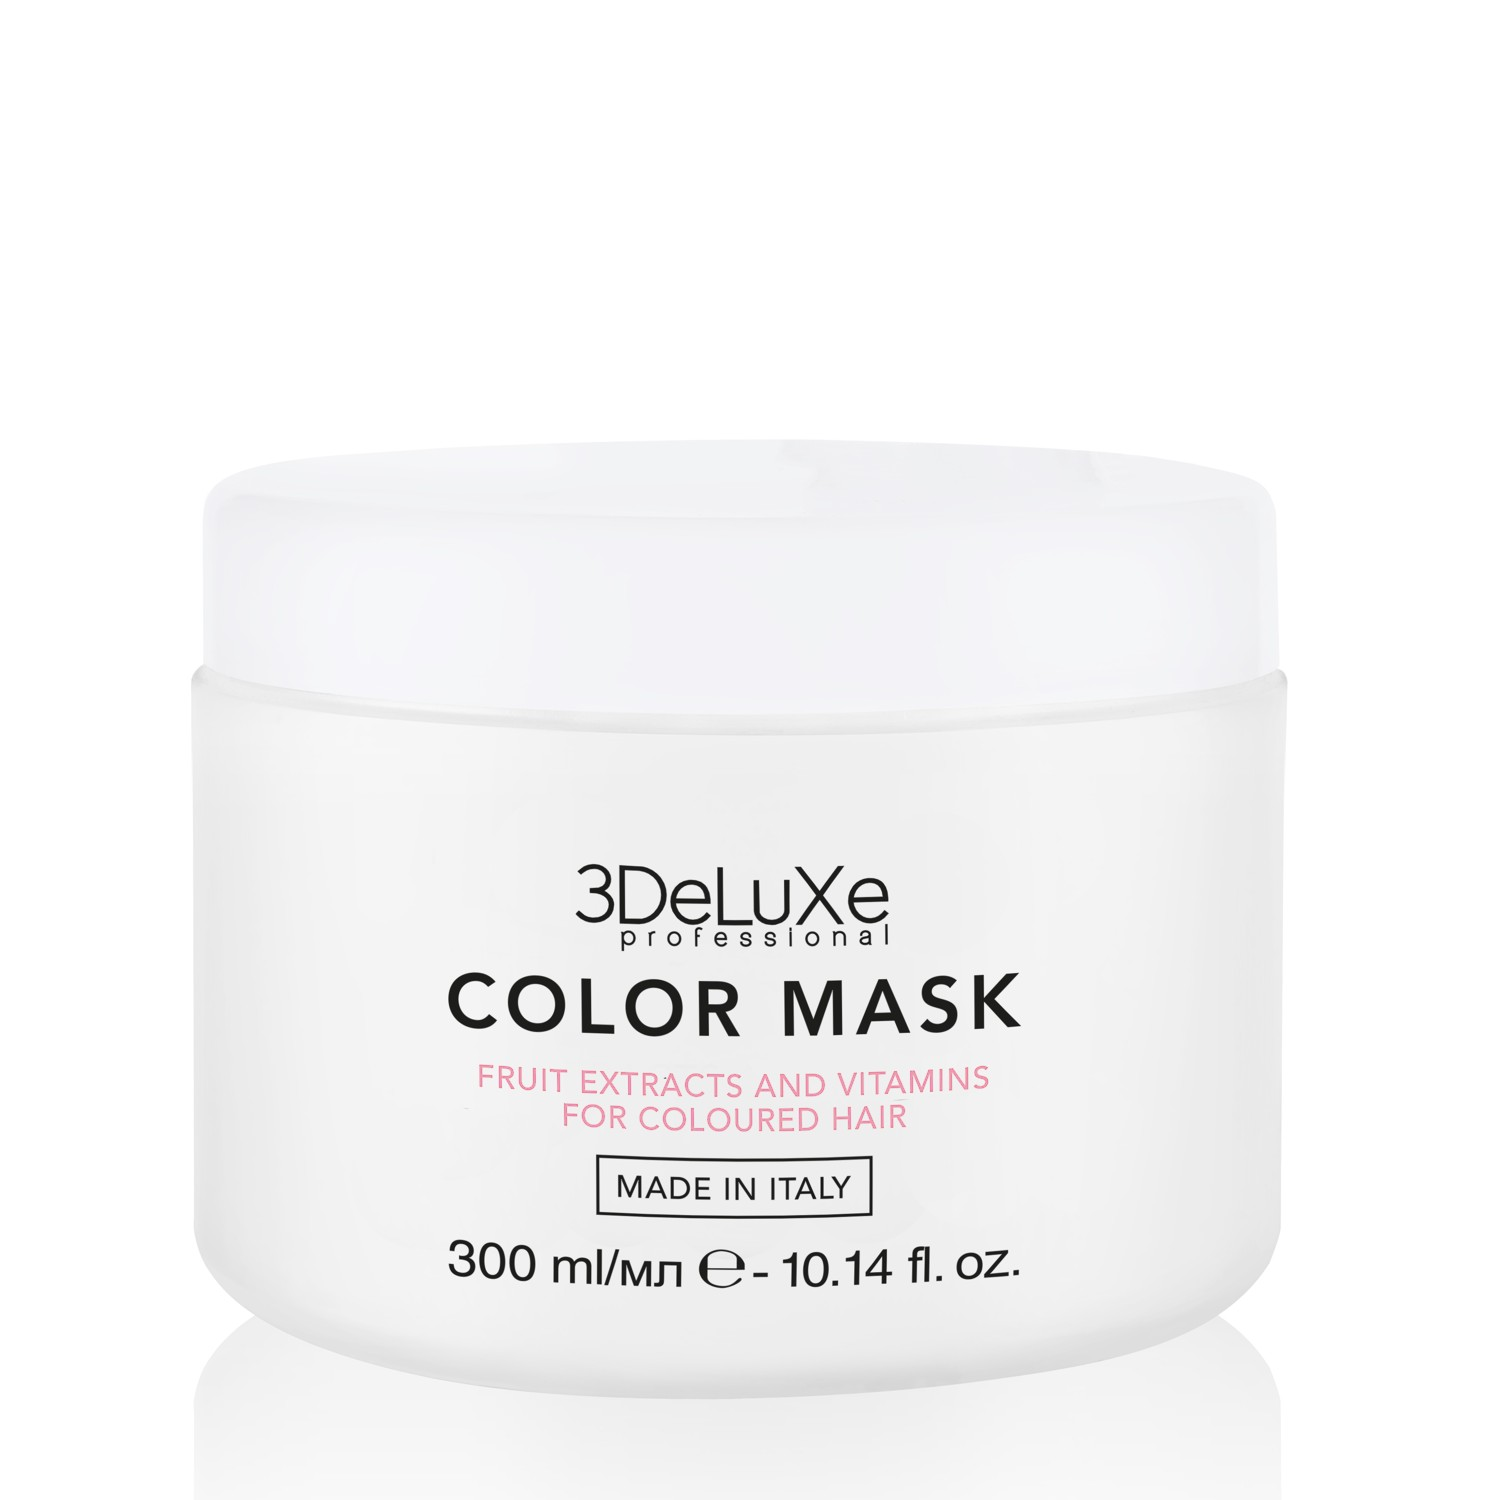 3DeLuXe Professional COLOR Mask 300 ml